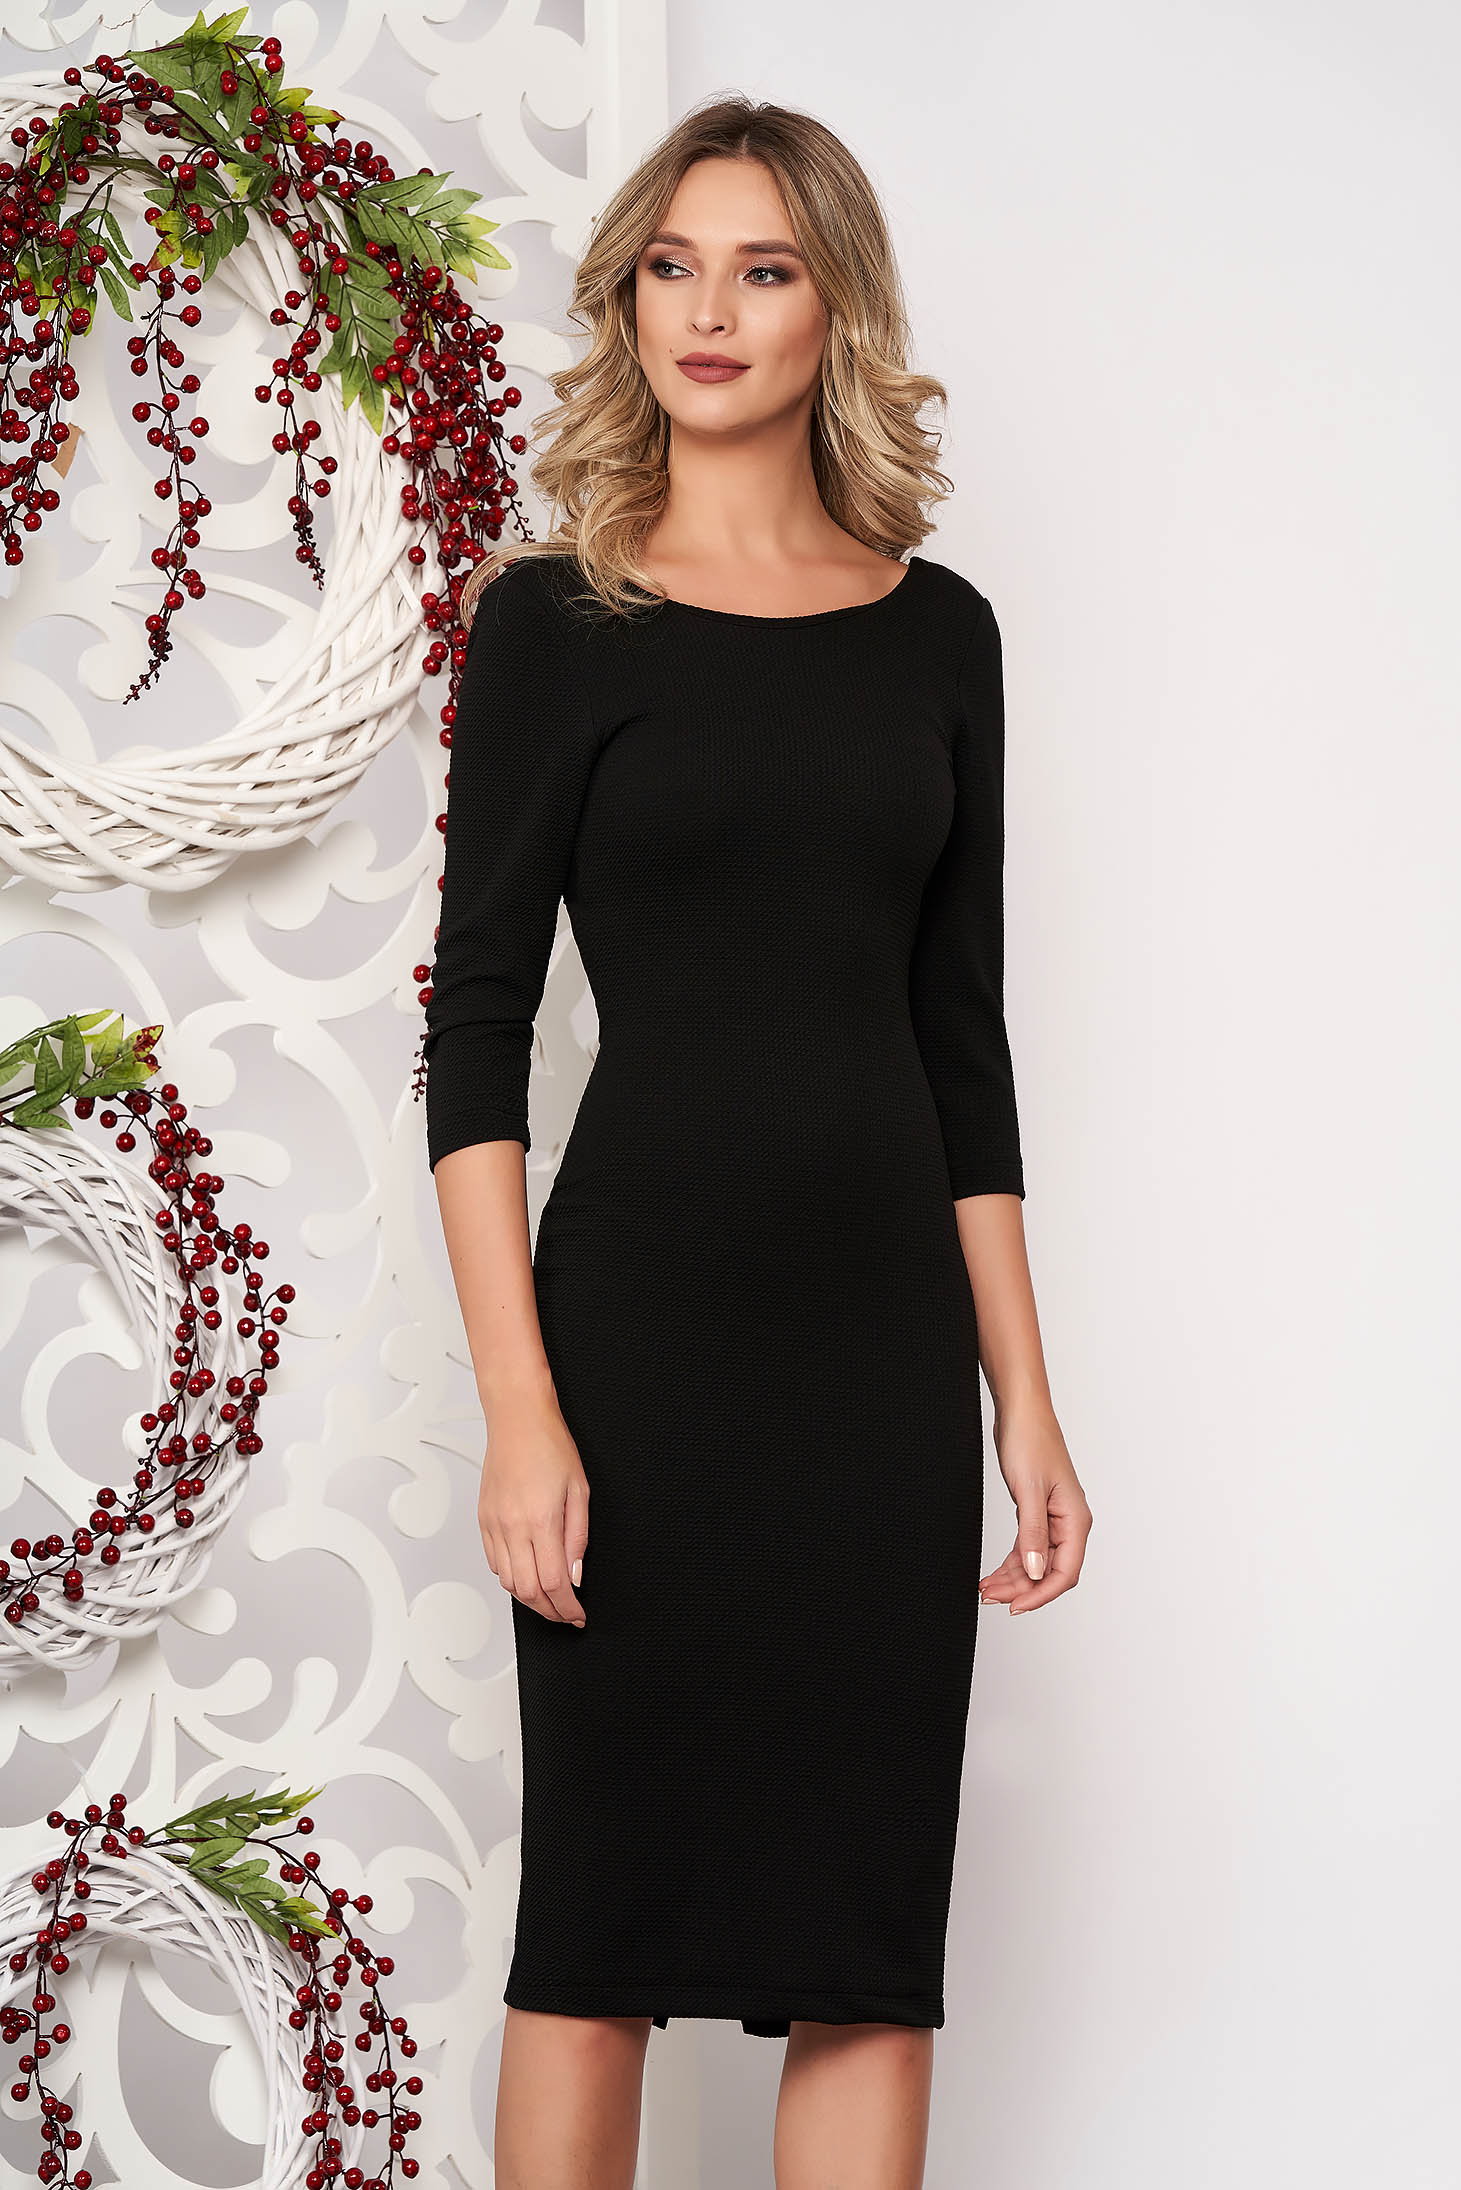 Dress StarShinerS black back zipper fastening with 3/4 sleeves slightly elastic fabric pencil midi